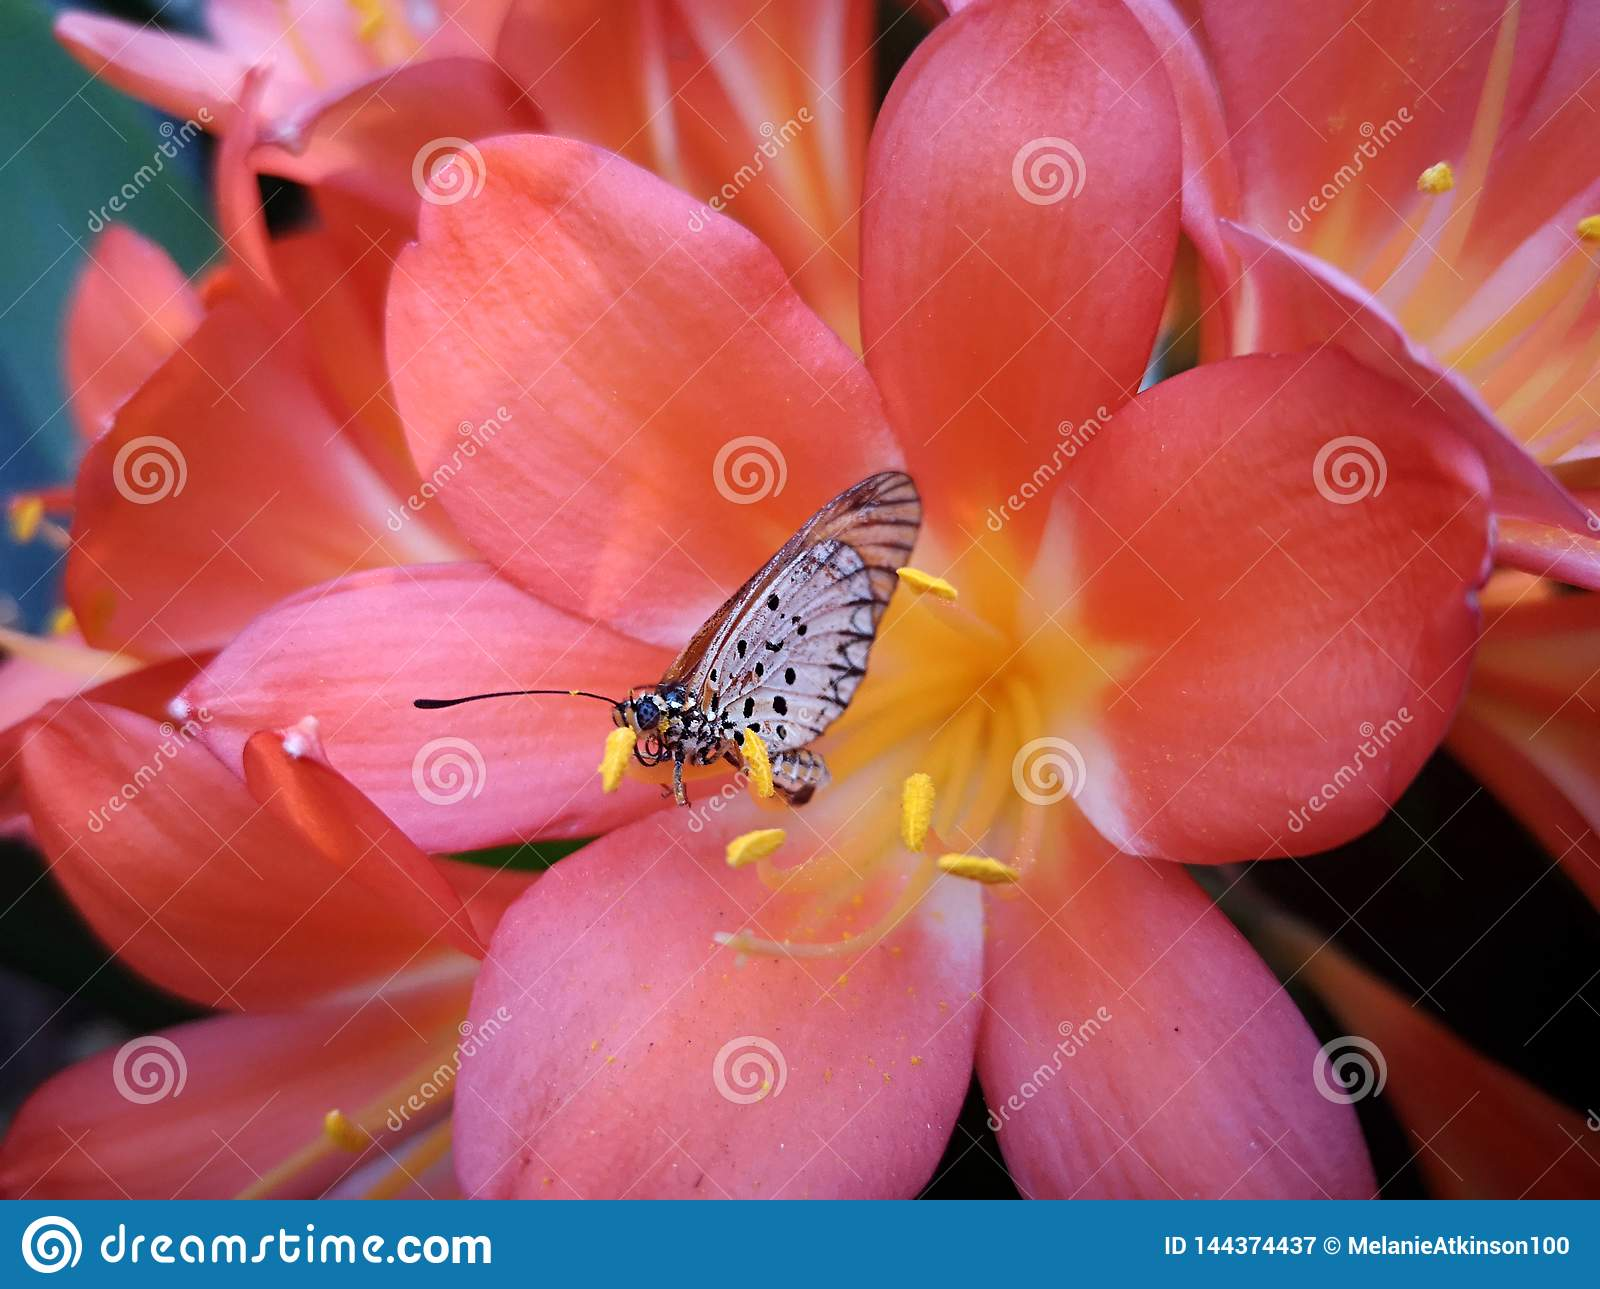 Butterfly sitting on the petal of a pink flower